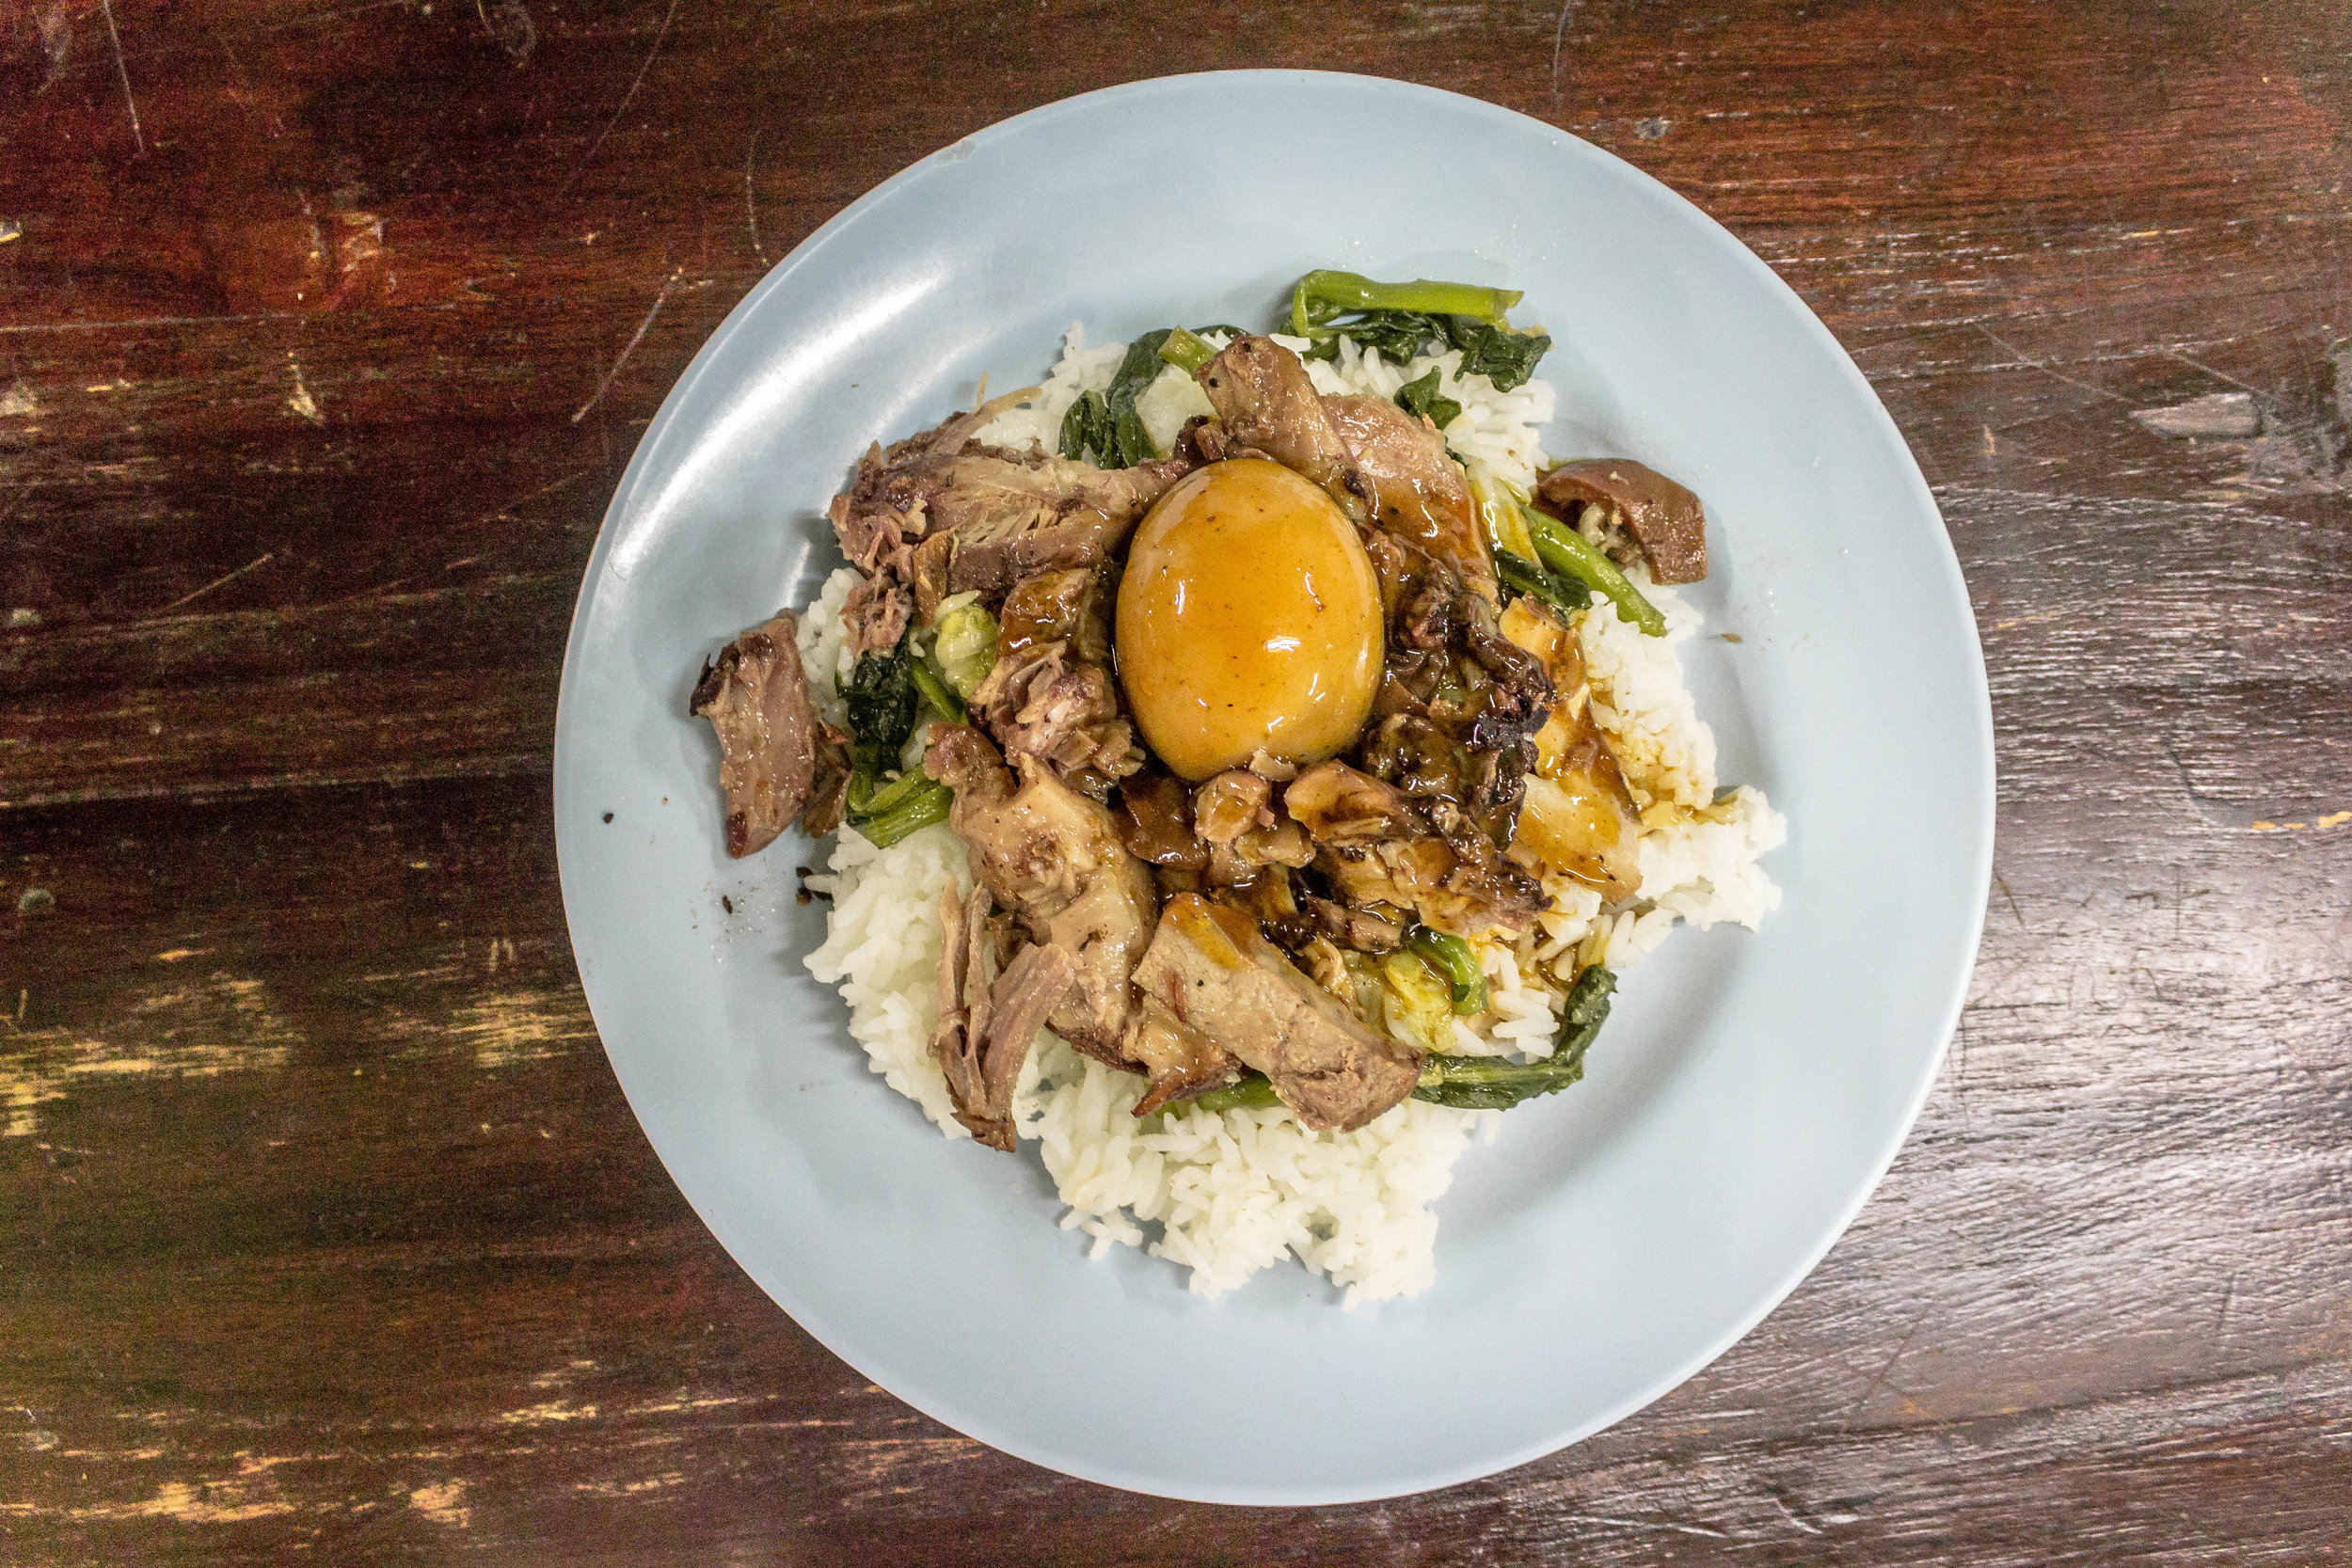 pork leg served with rice, morning glory, special sauce, and a hard-boiled egg